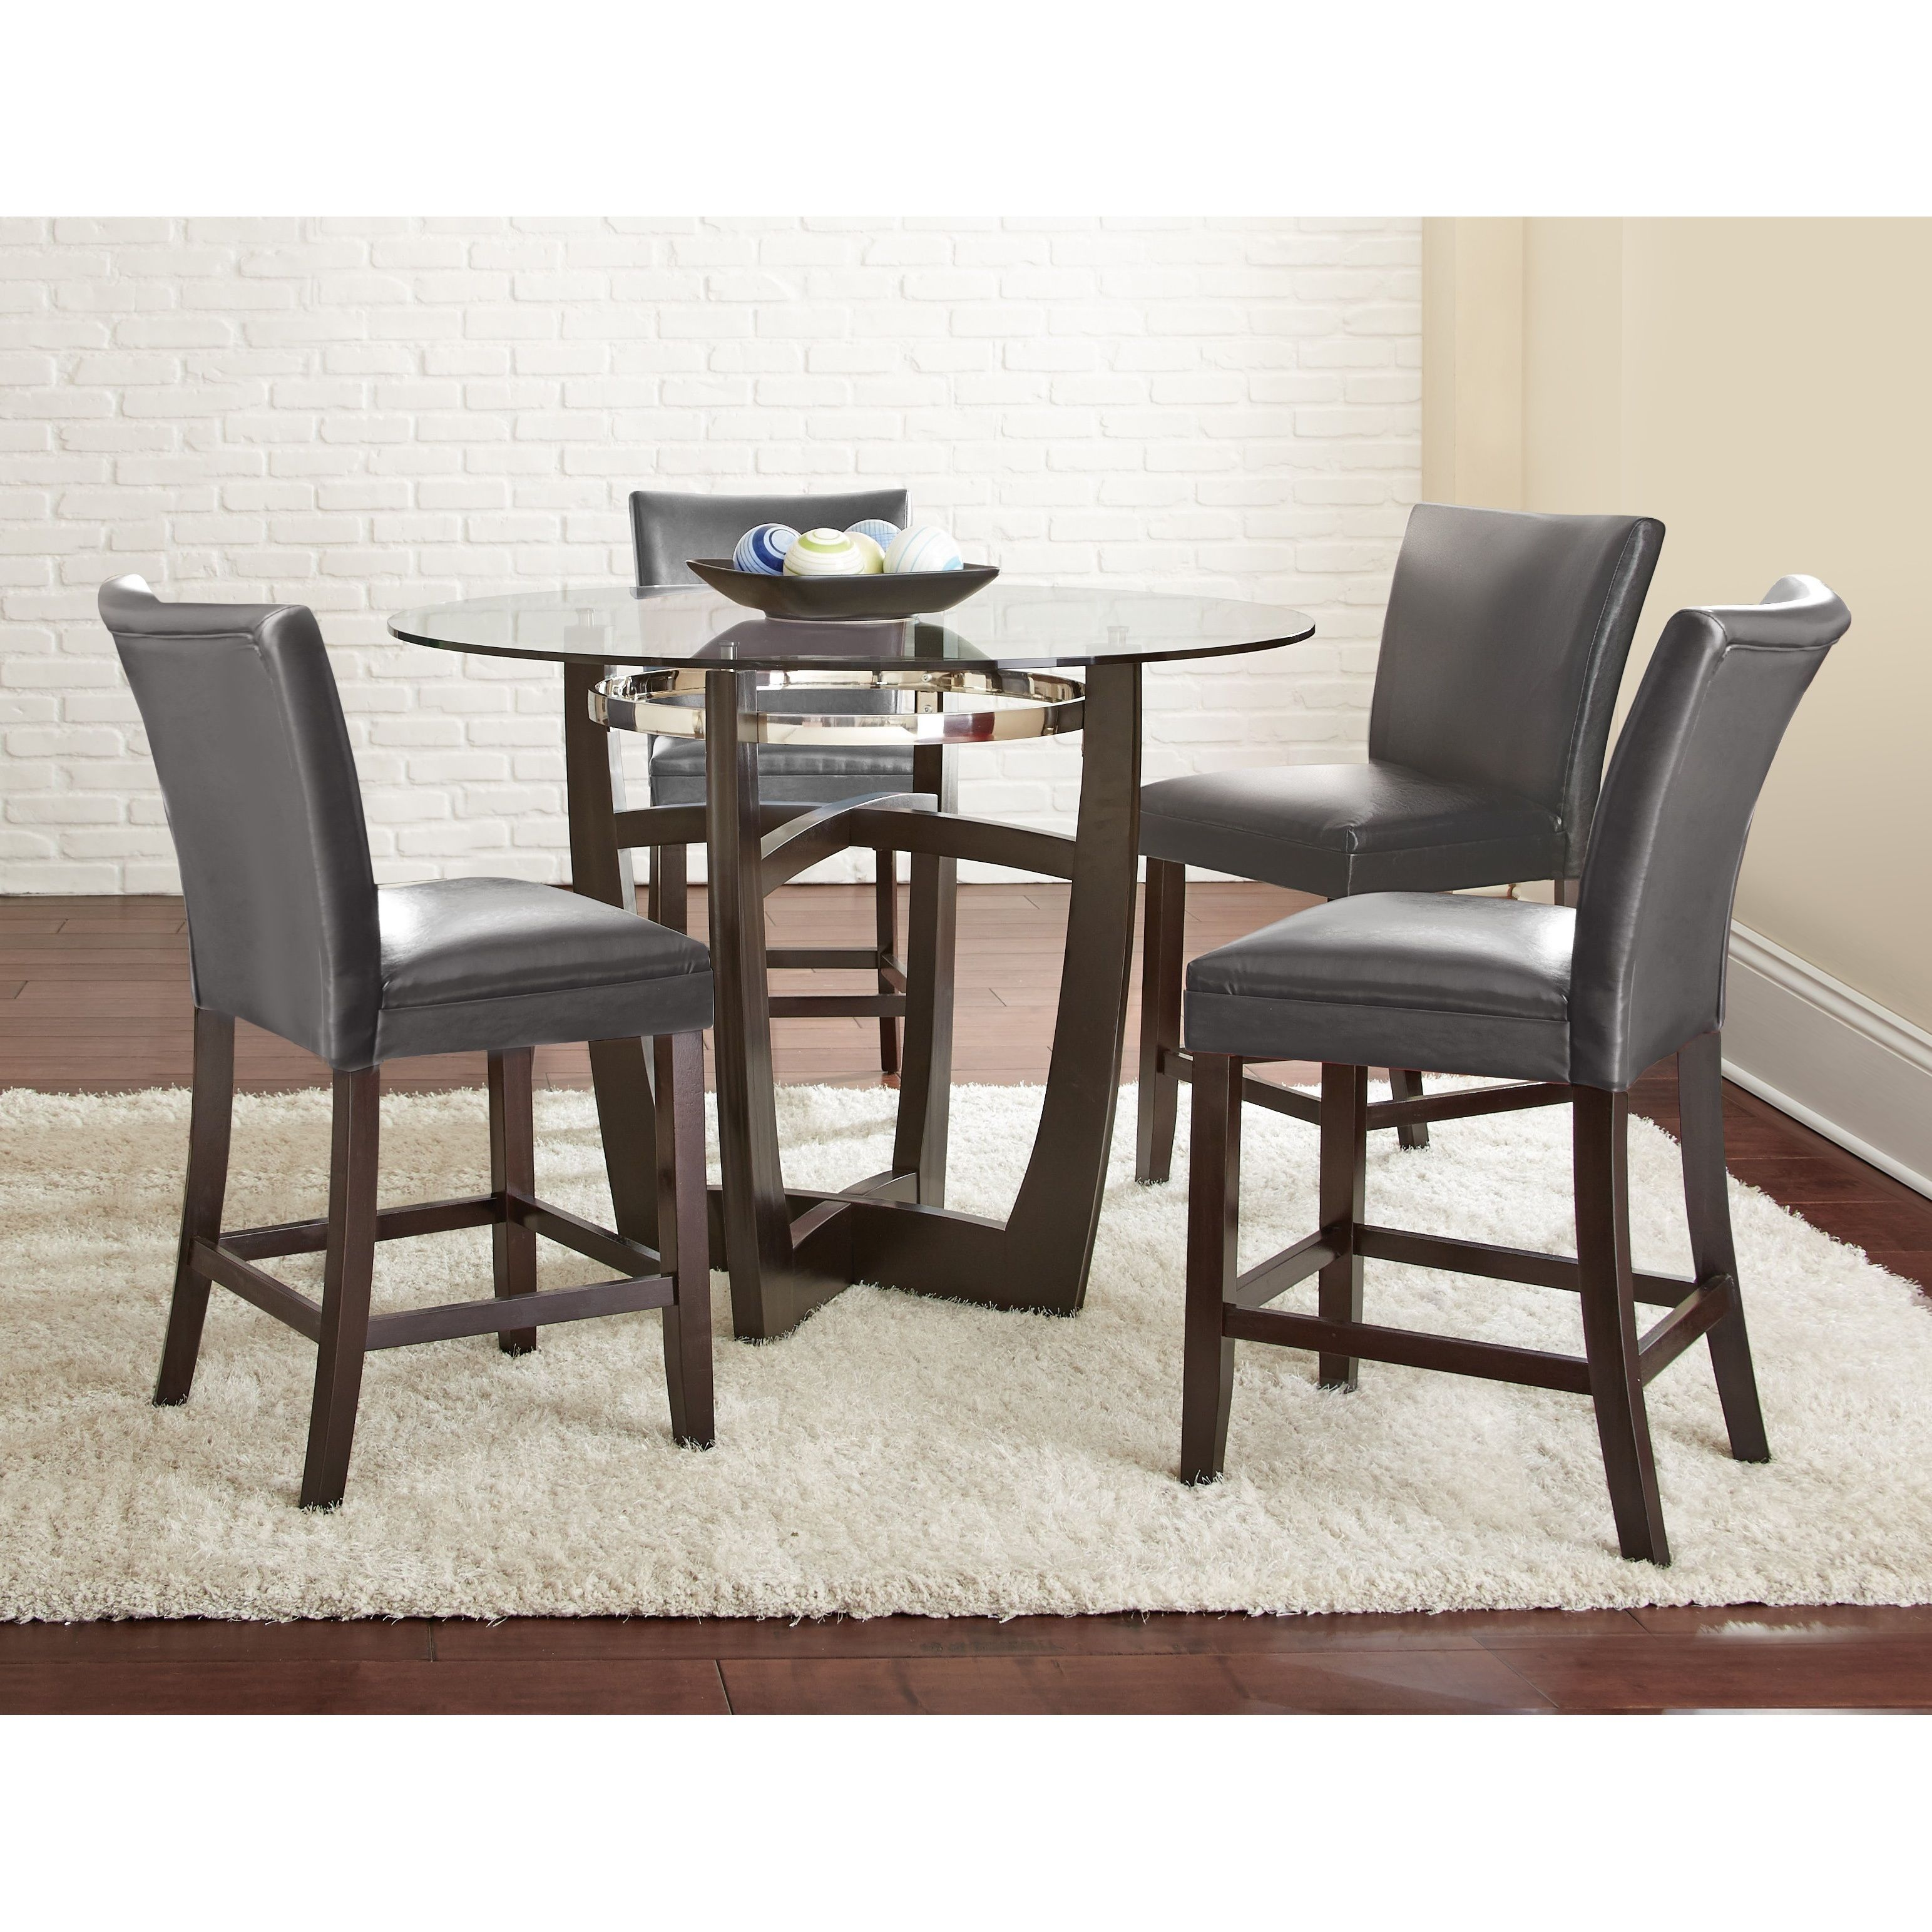 Best Monoco Counter Height 5Pc Dining Set By Greyson Living 400 x 300